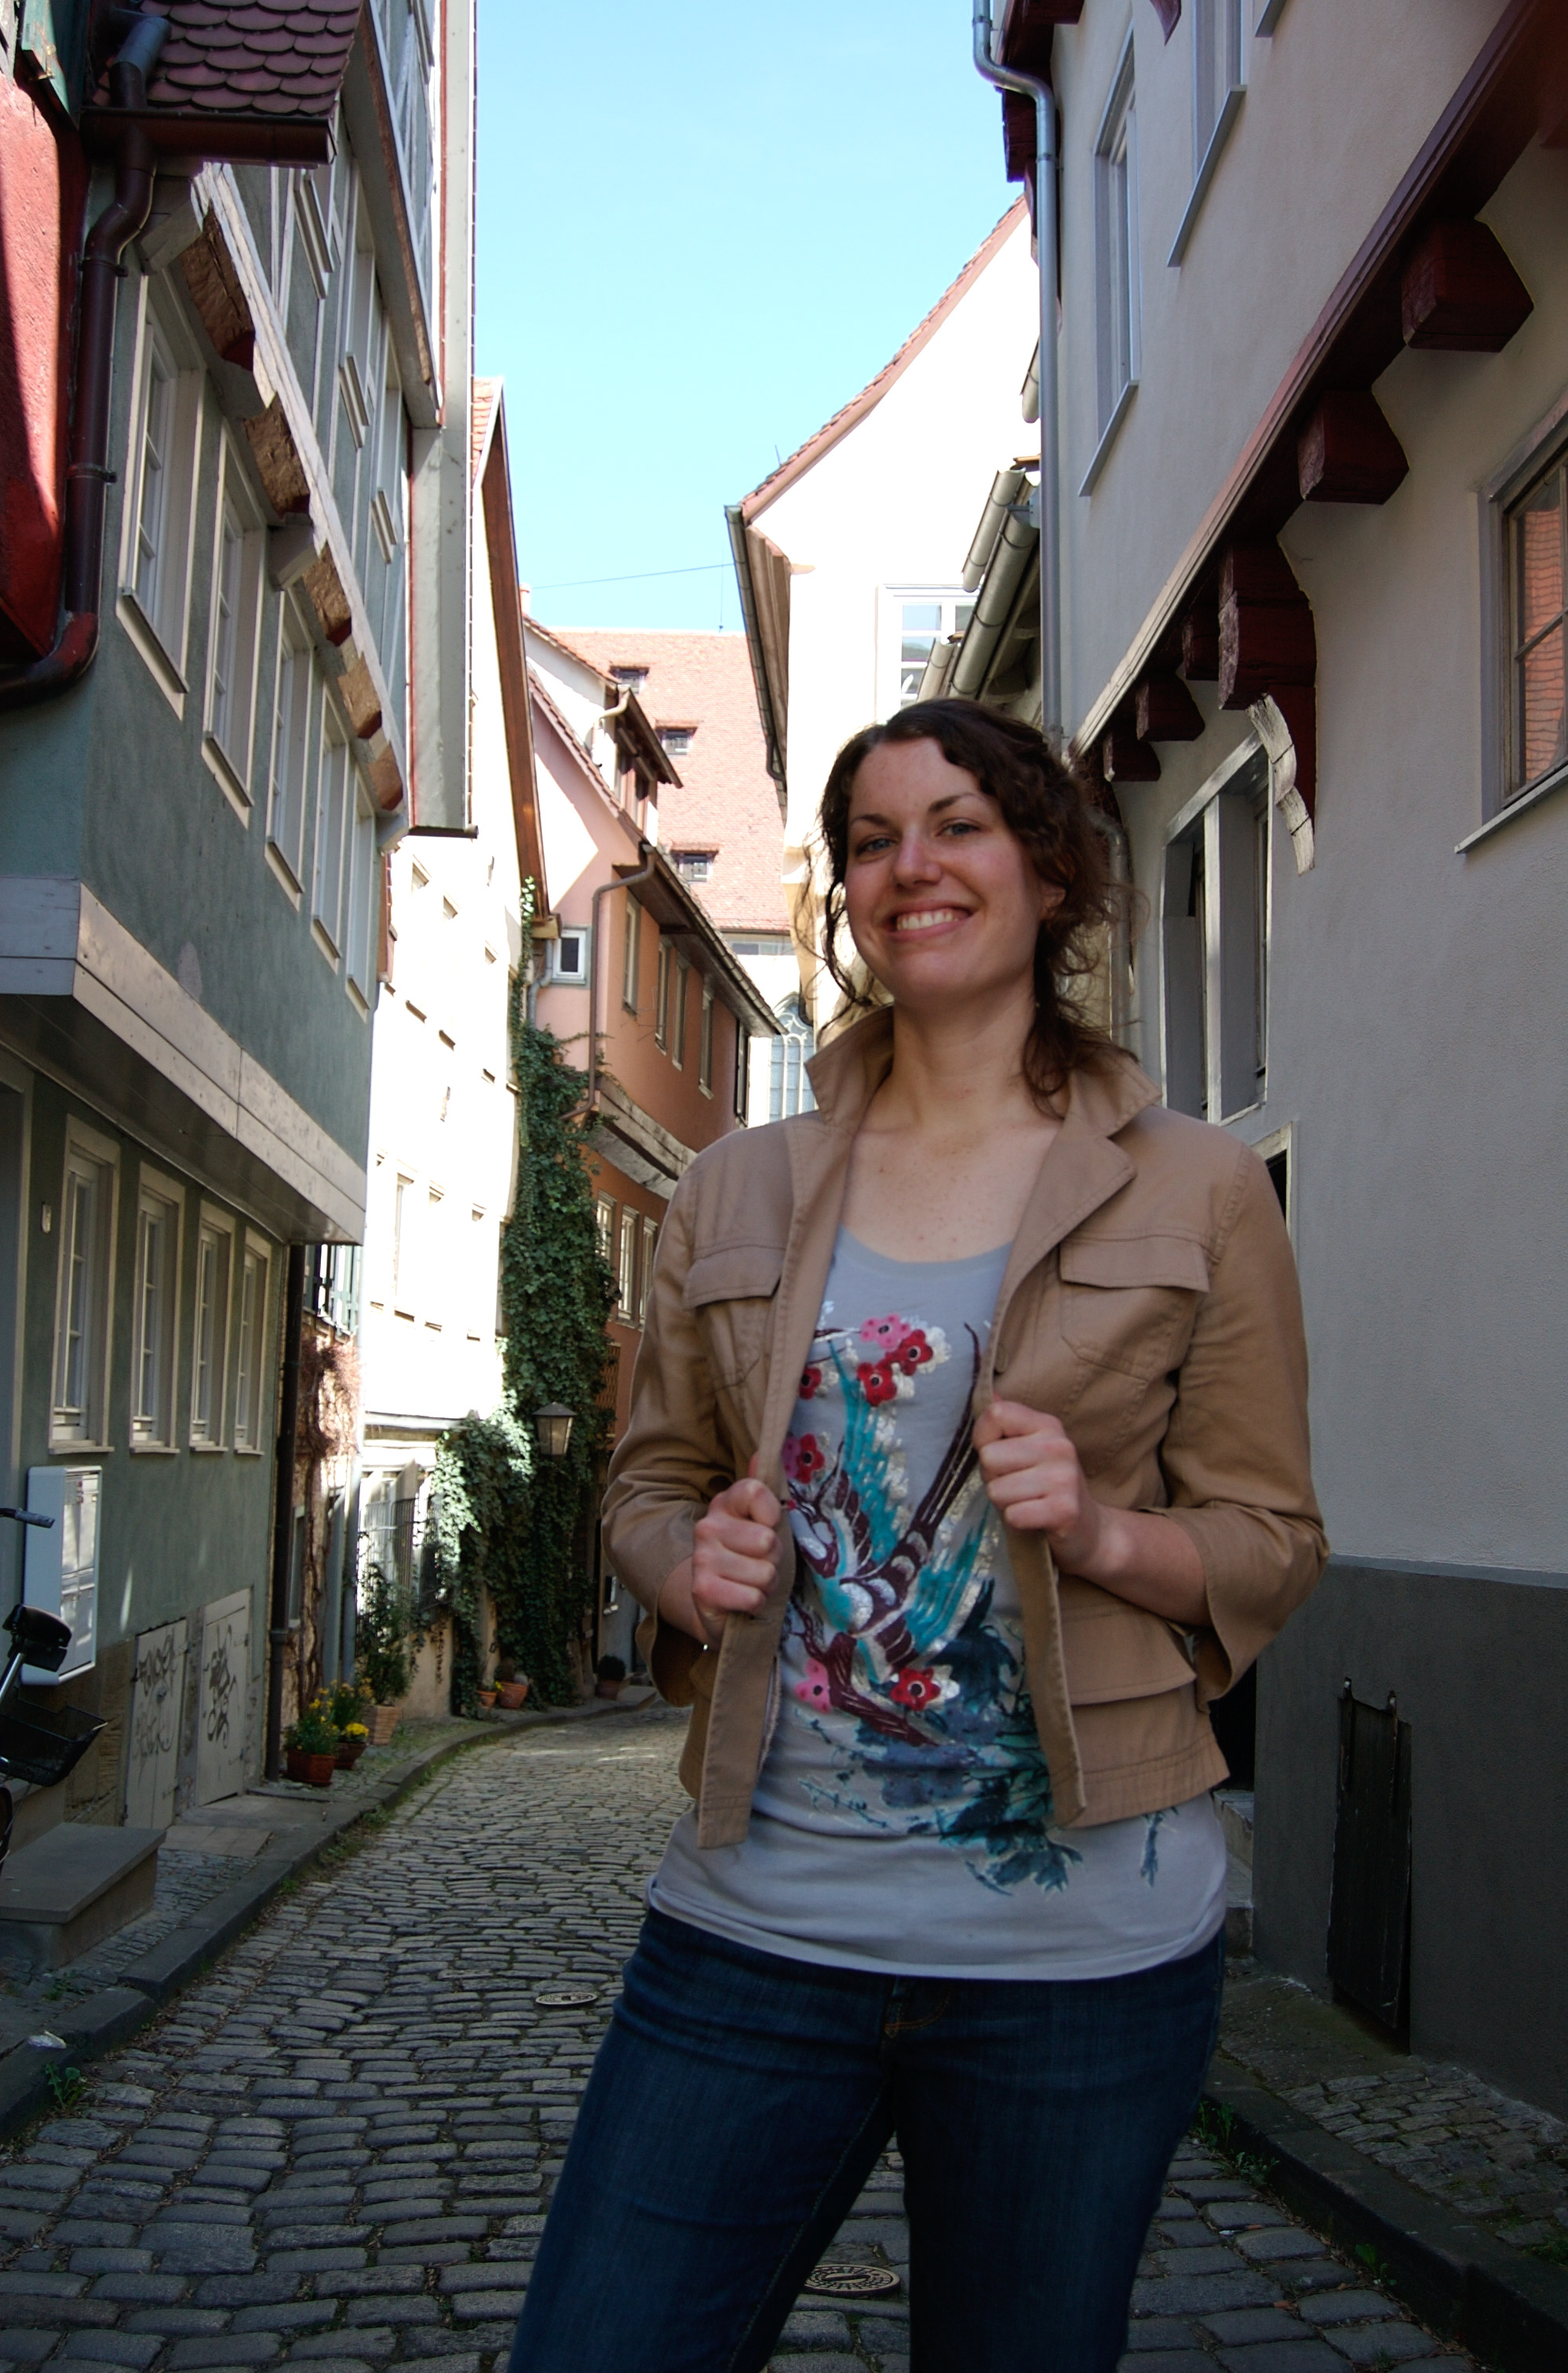 Grabbing my jacket in southern Germany, where I studied for 4 months while enrolled at the Cleveland Institute of Art.